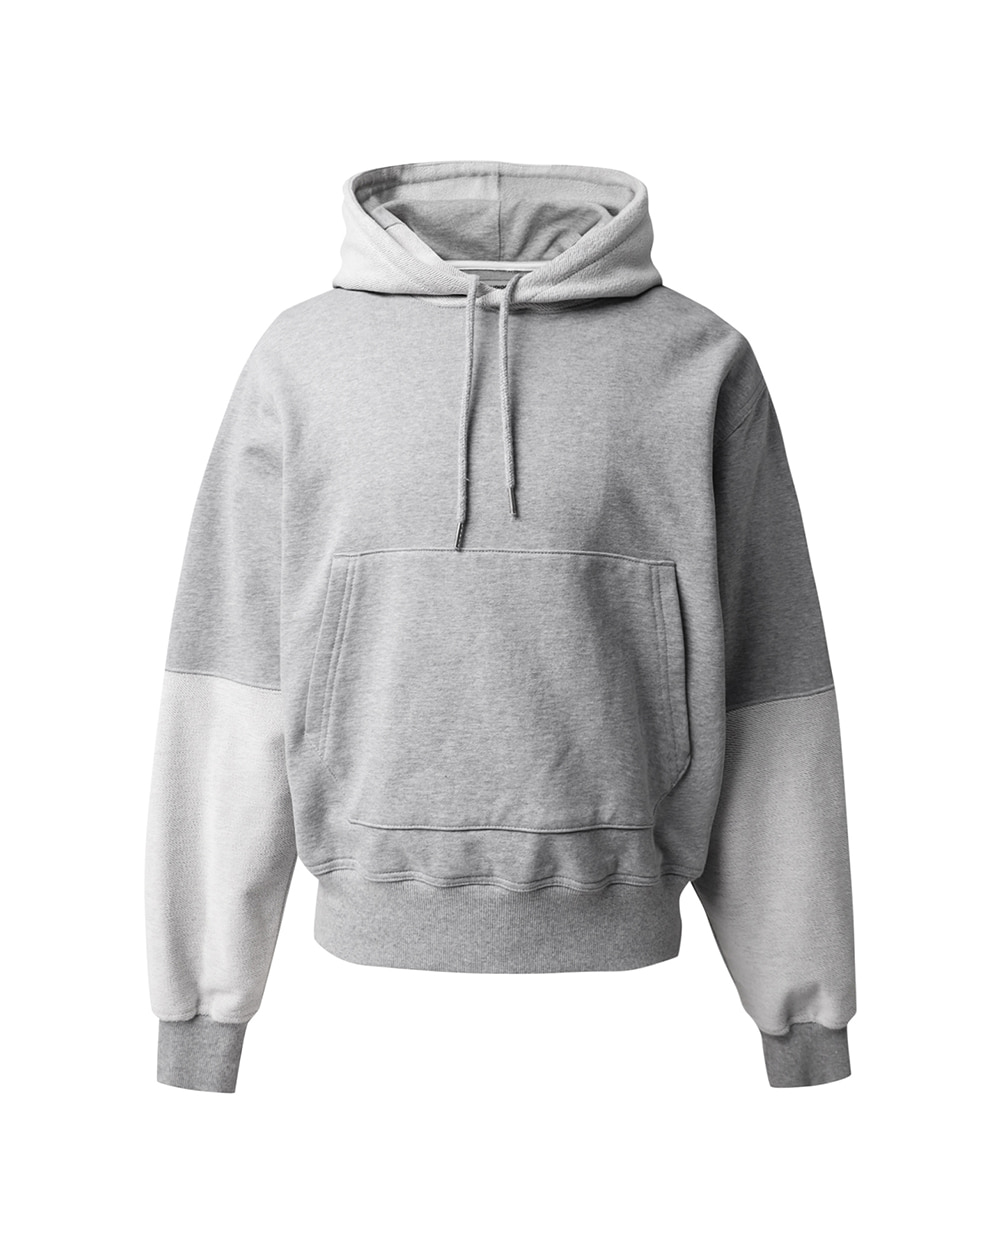 ATE STUDIOS INSIDE-OUT HOODIE (Gray)